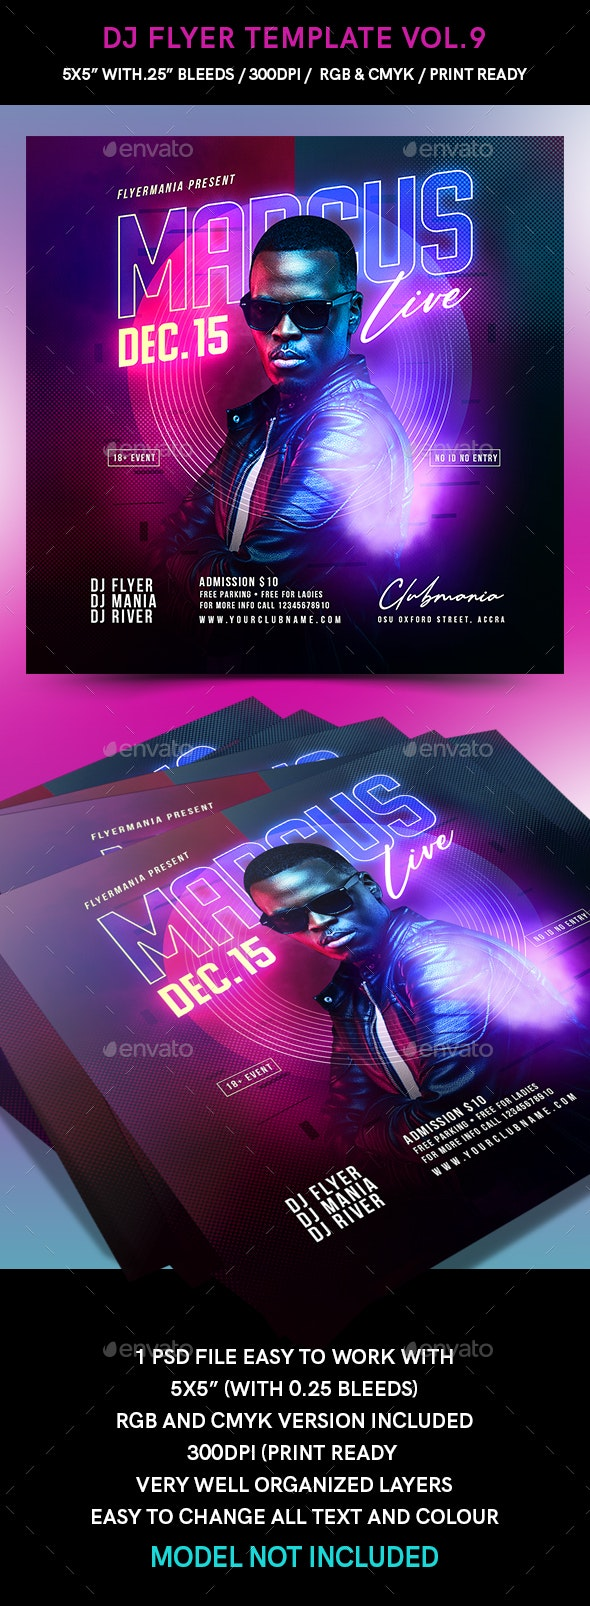 DJ Flyer Template Vol.9